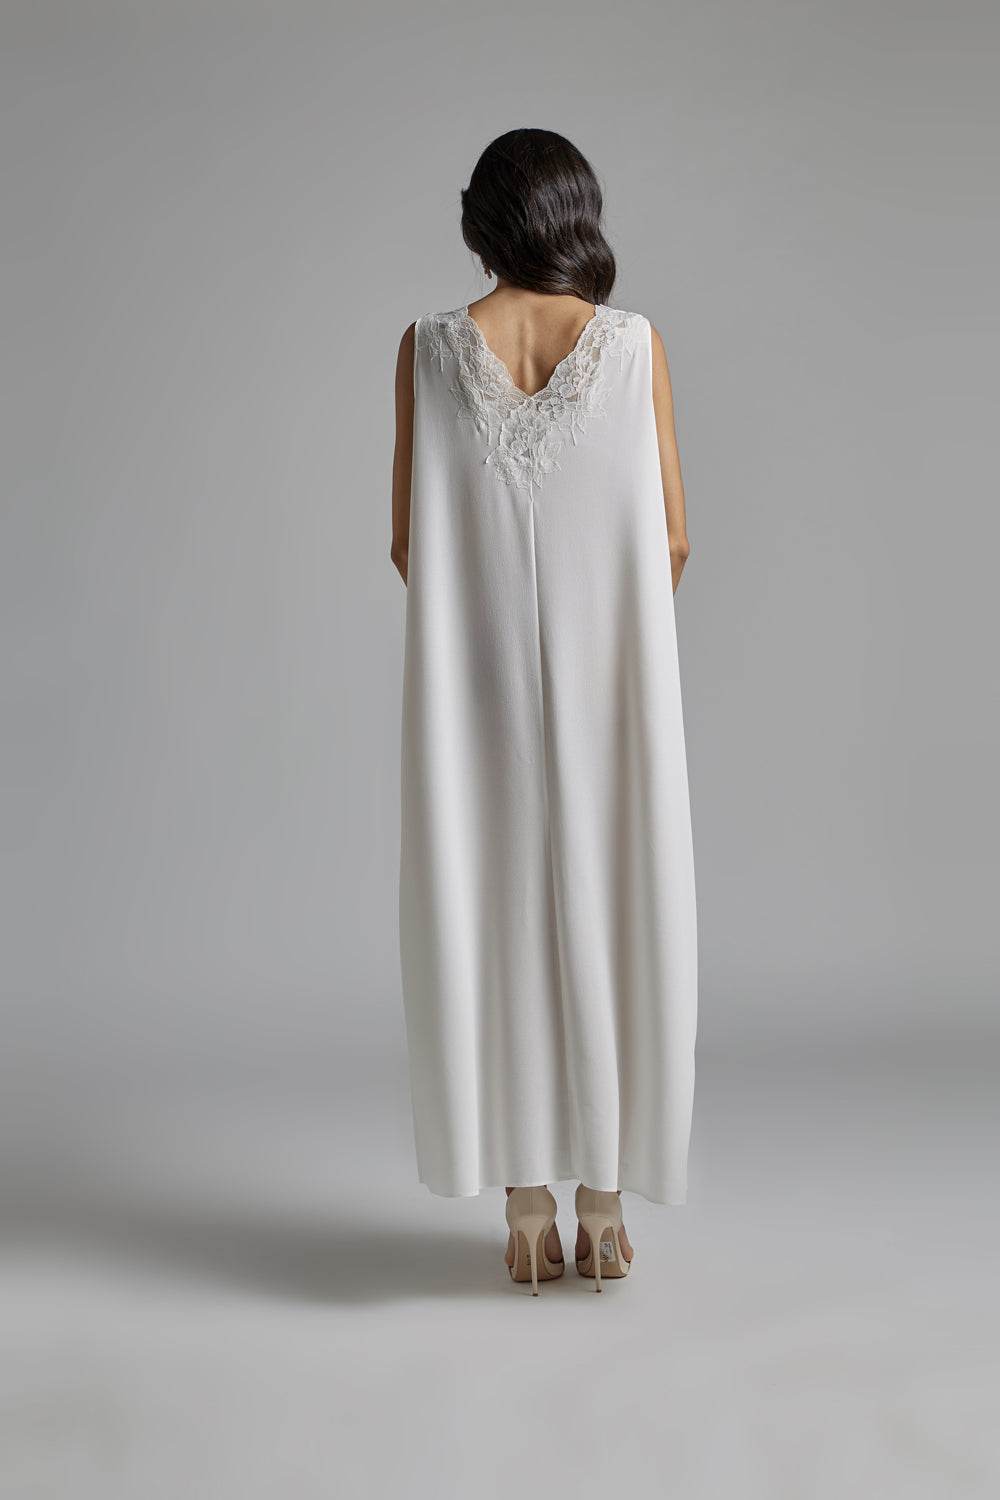 Silk Chiffon Off White Robe Set - Perla